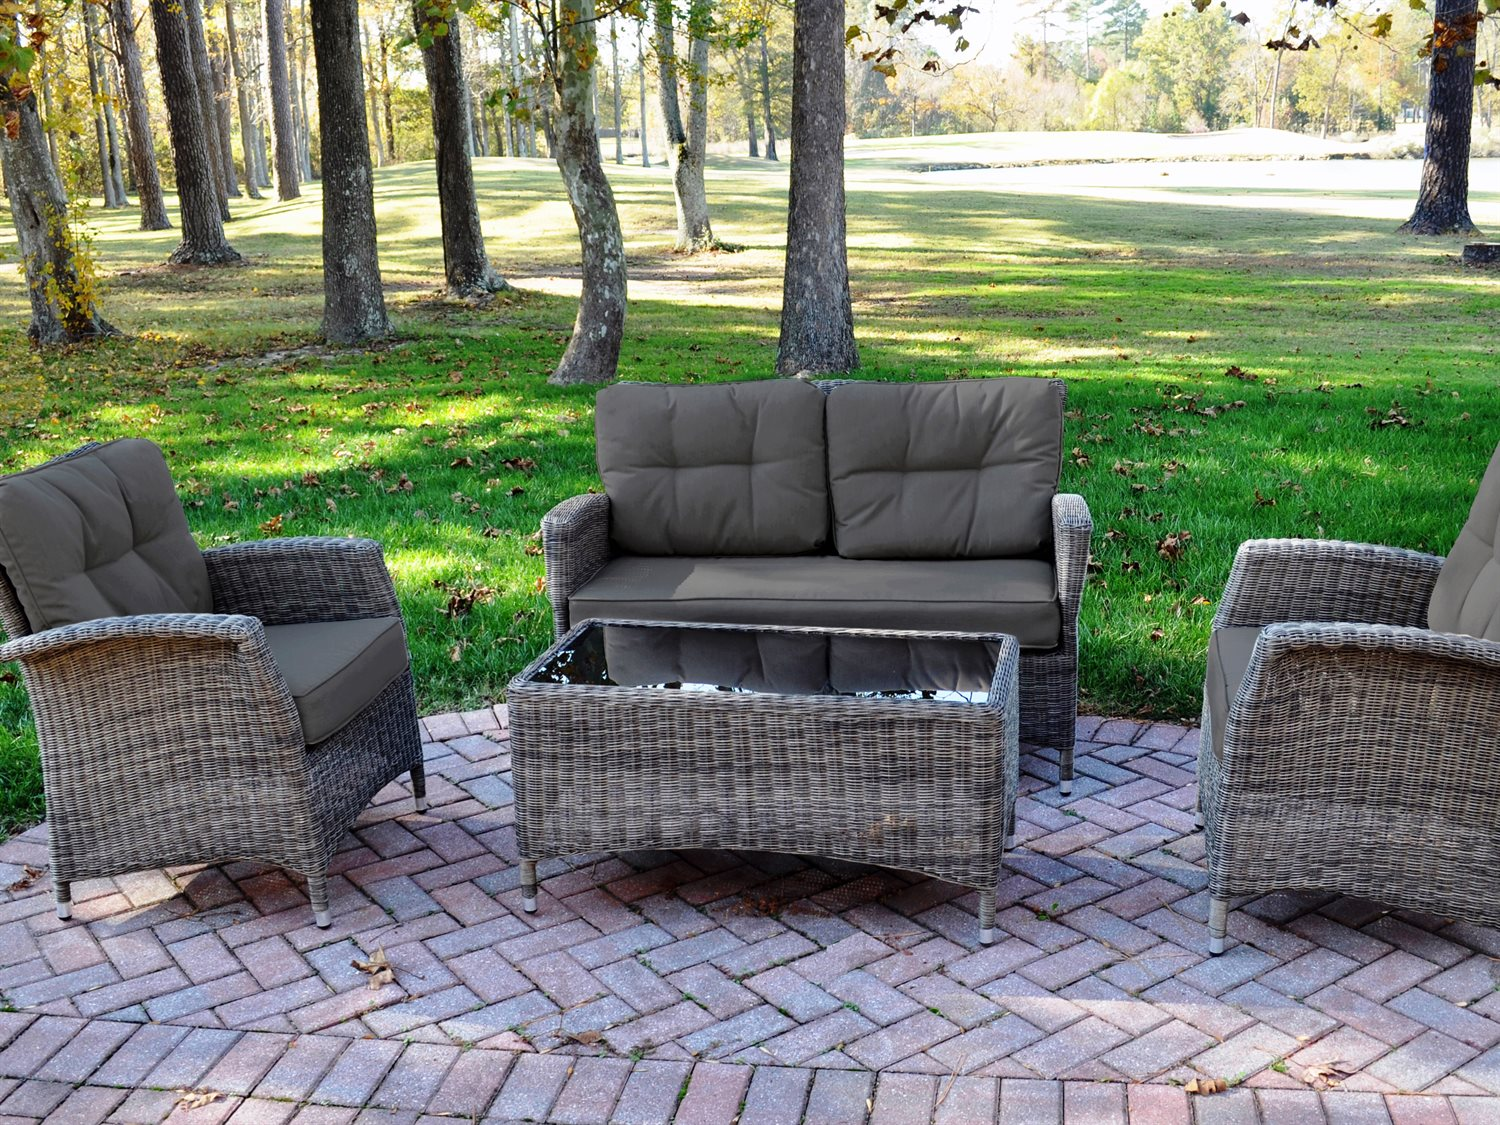 kettler lakena aluminum wicker lounge set with cushions 304430 2000k1cc. Black Bedroom Furniture Sets. Home Design Ideas